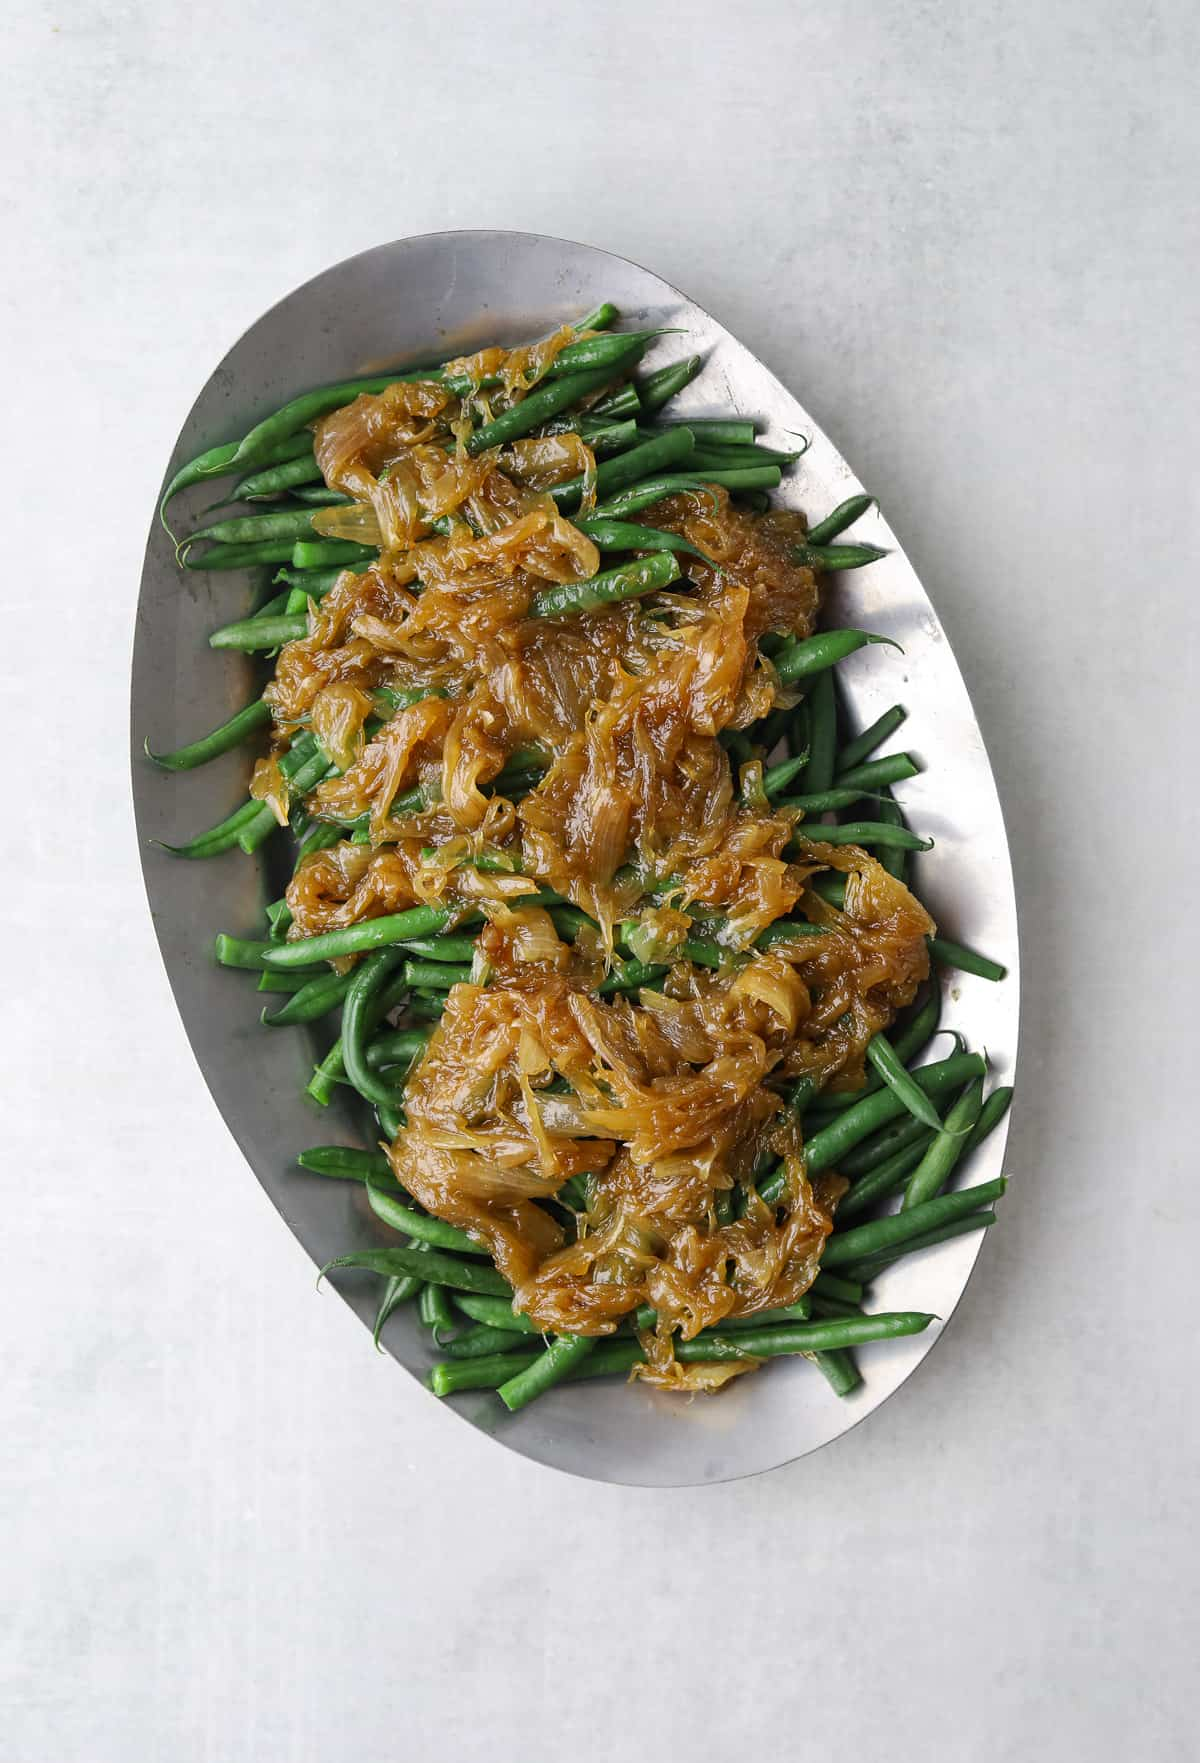 a silver platter filled with french green beans topped with golden brown caramelized on a blue background